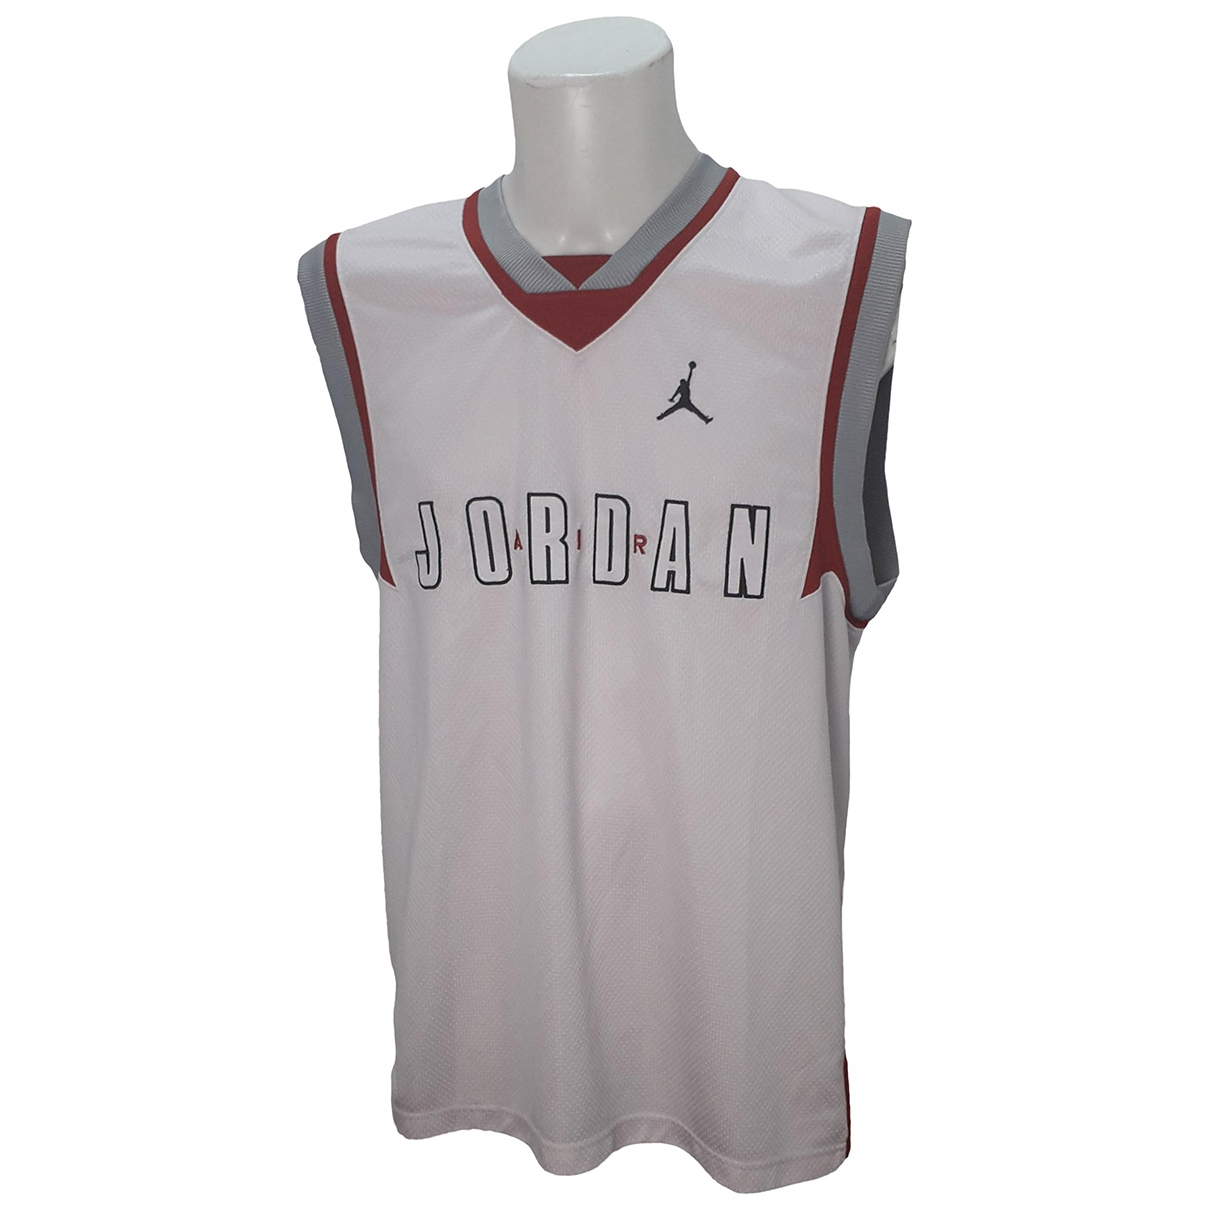 Jordan \N T-Shirts in  Weiss Polyester